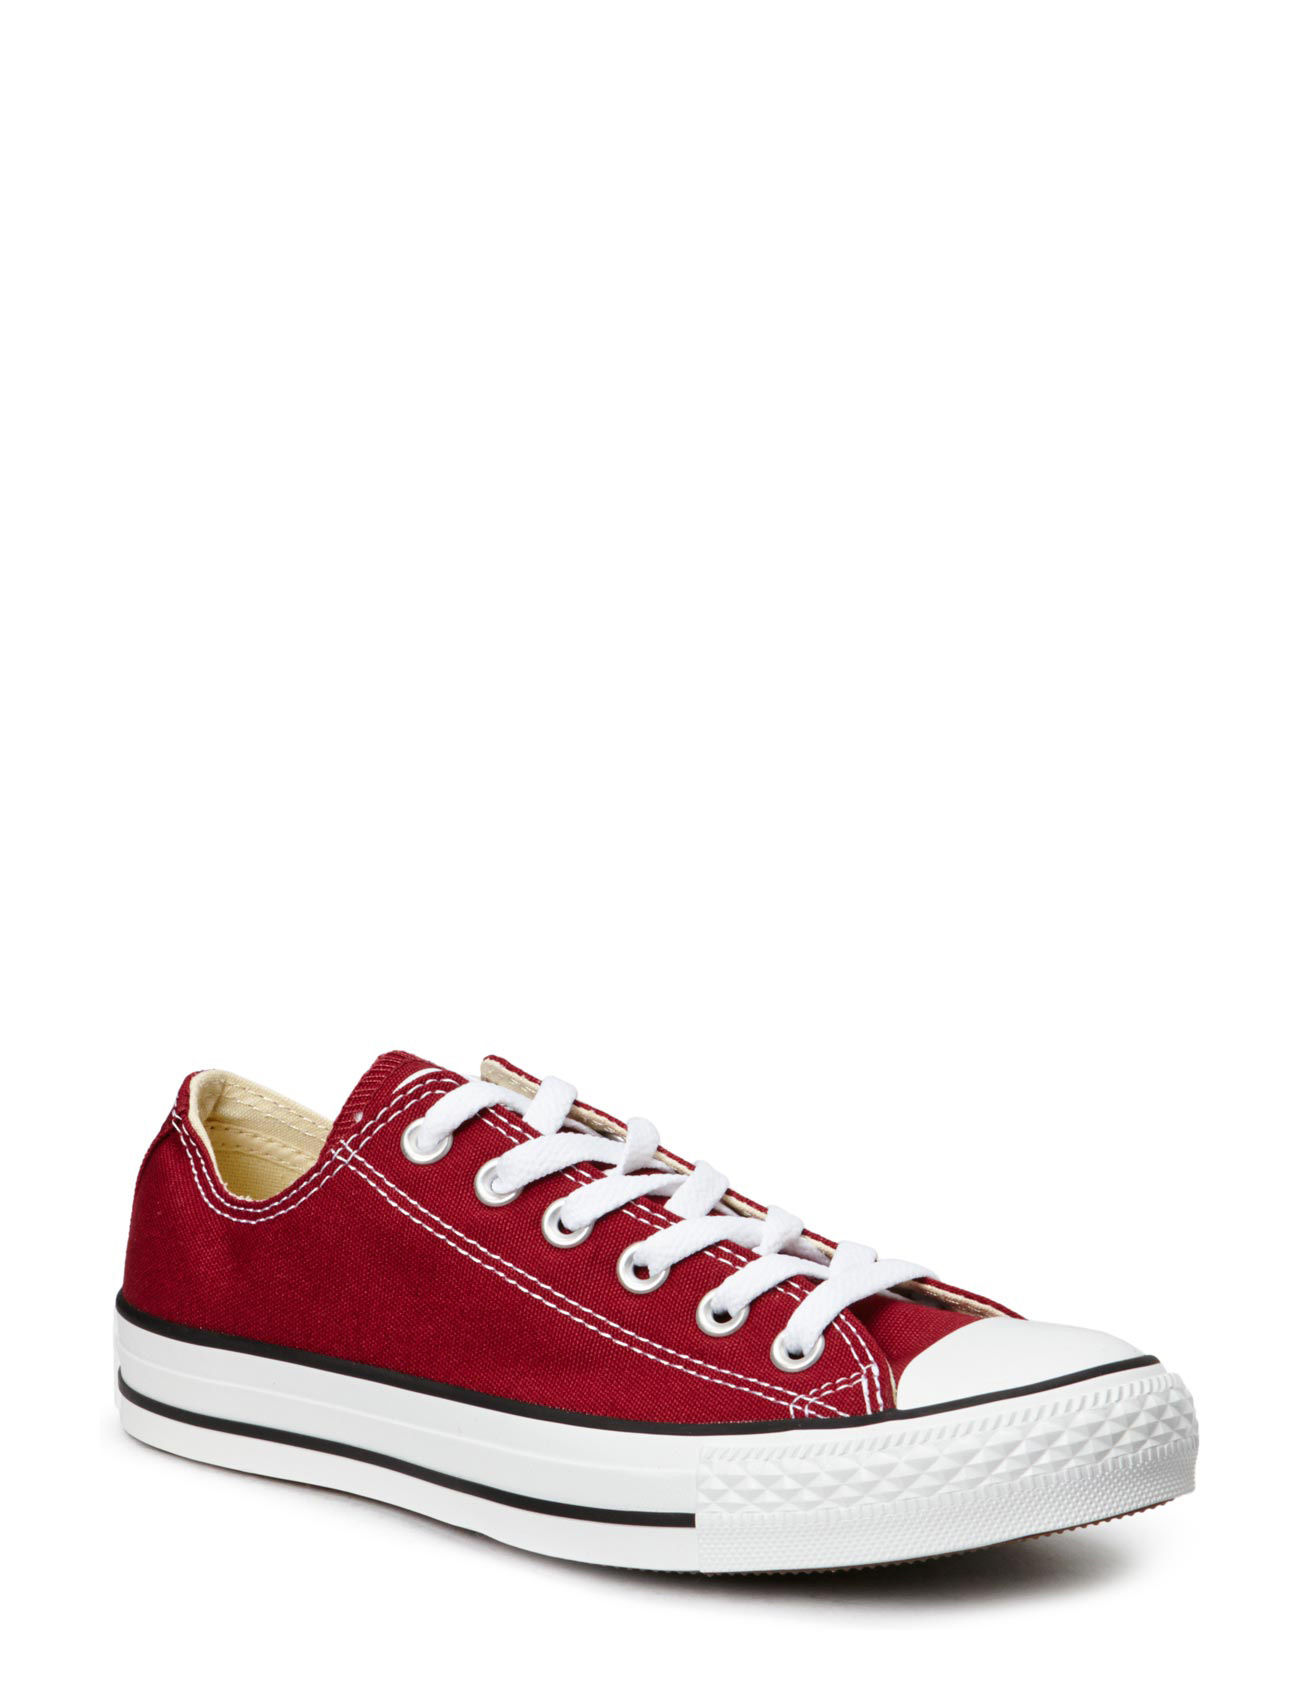 All Star Canvas Ox Converse Sneakers til Herrer i